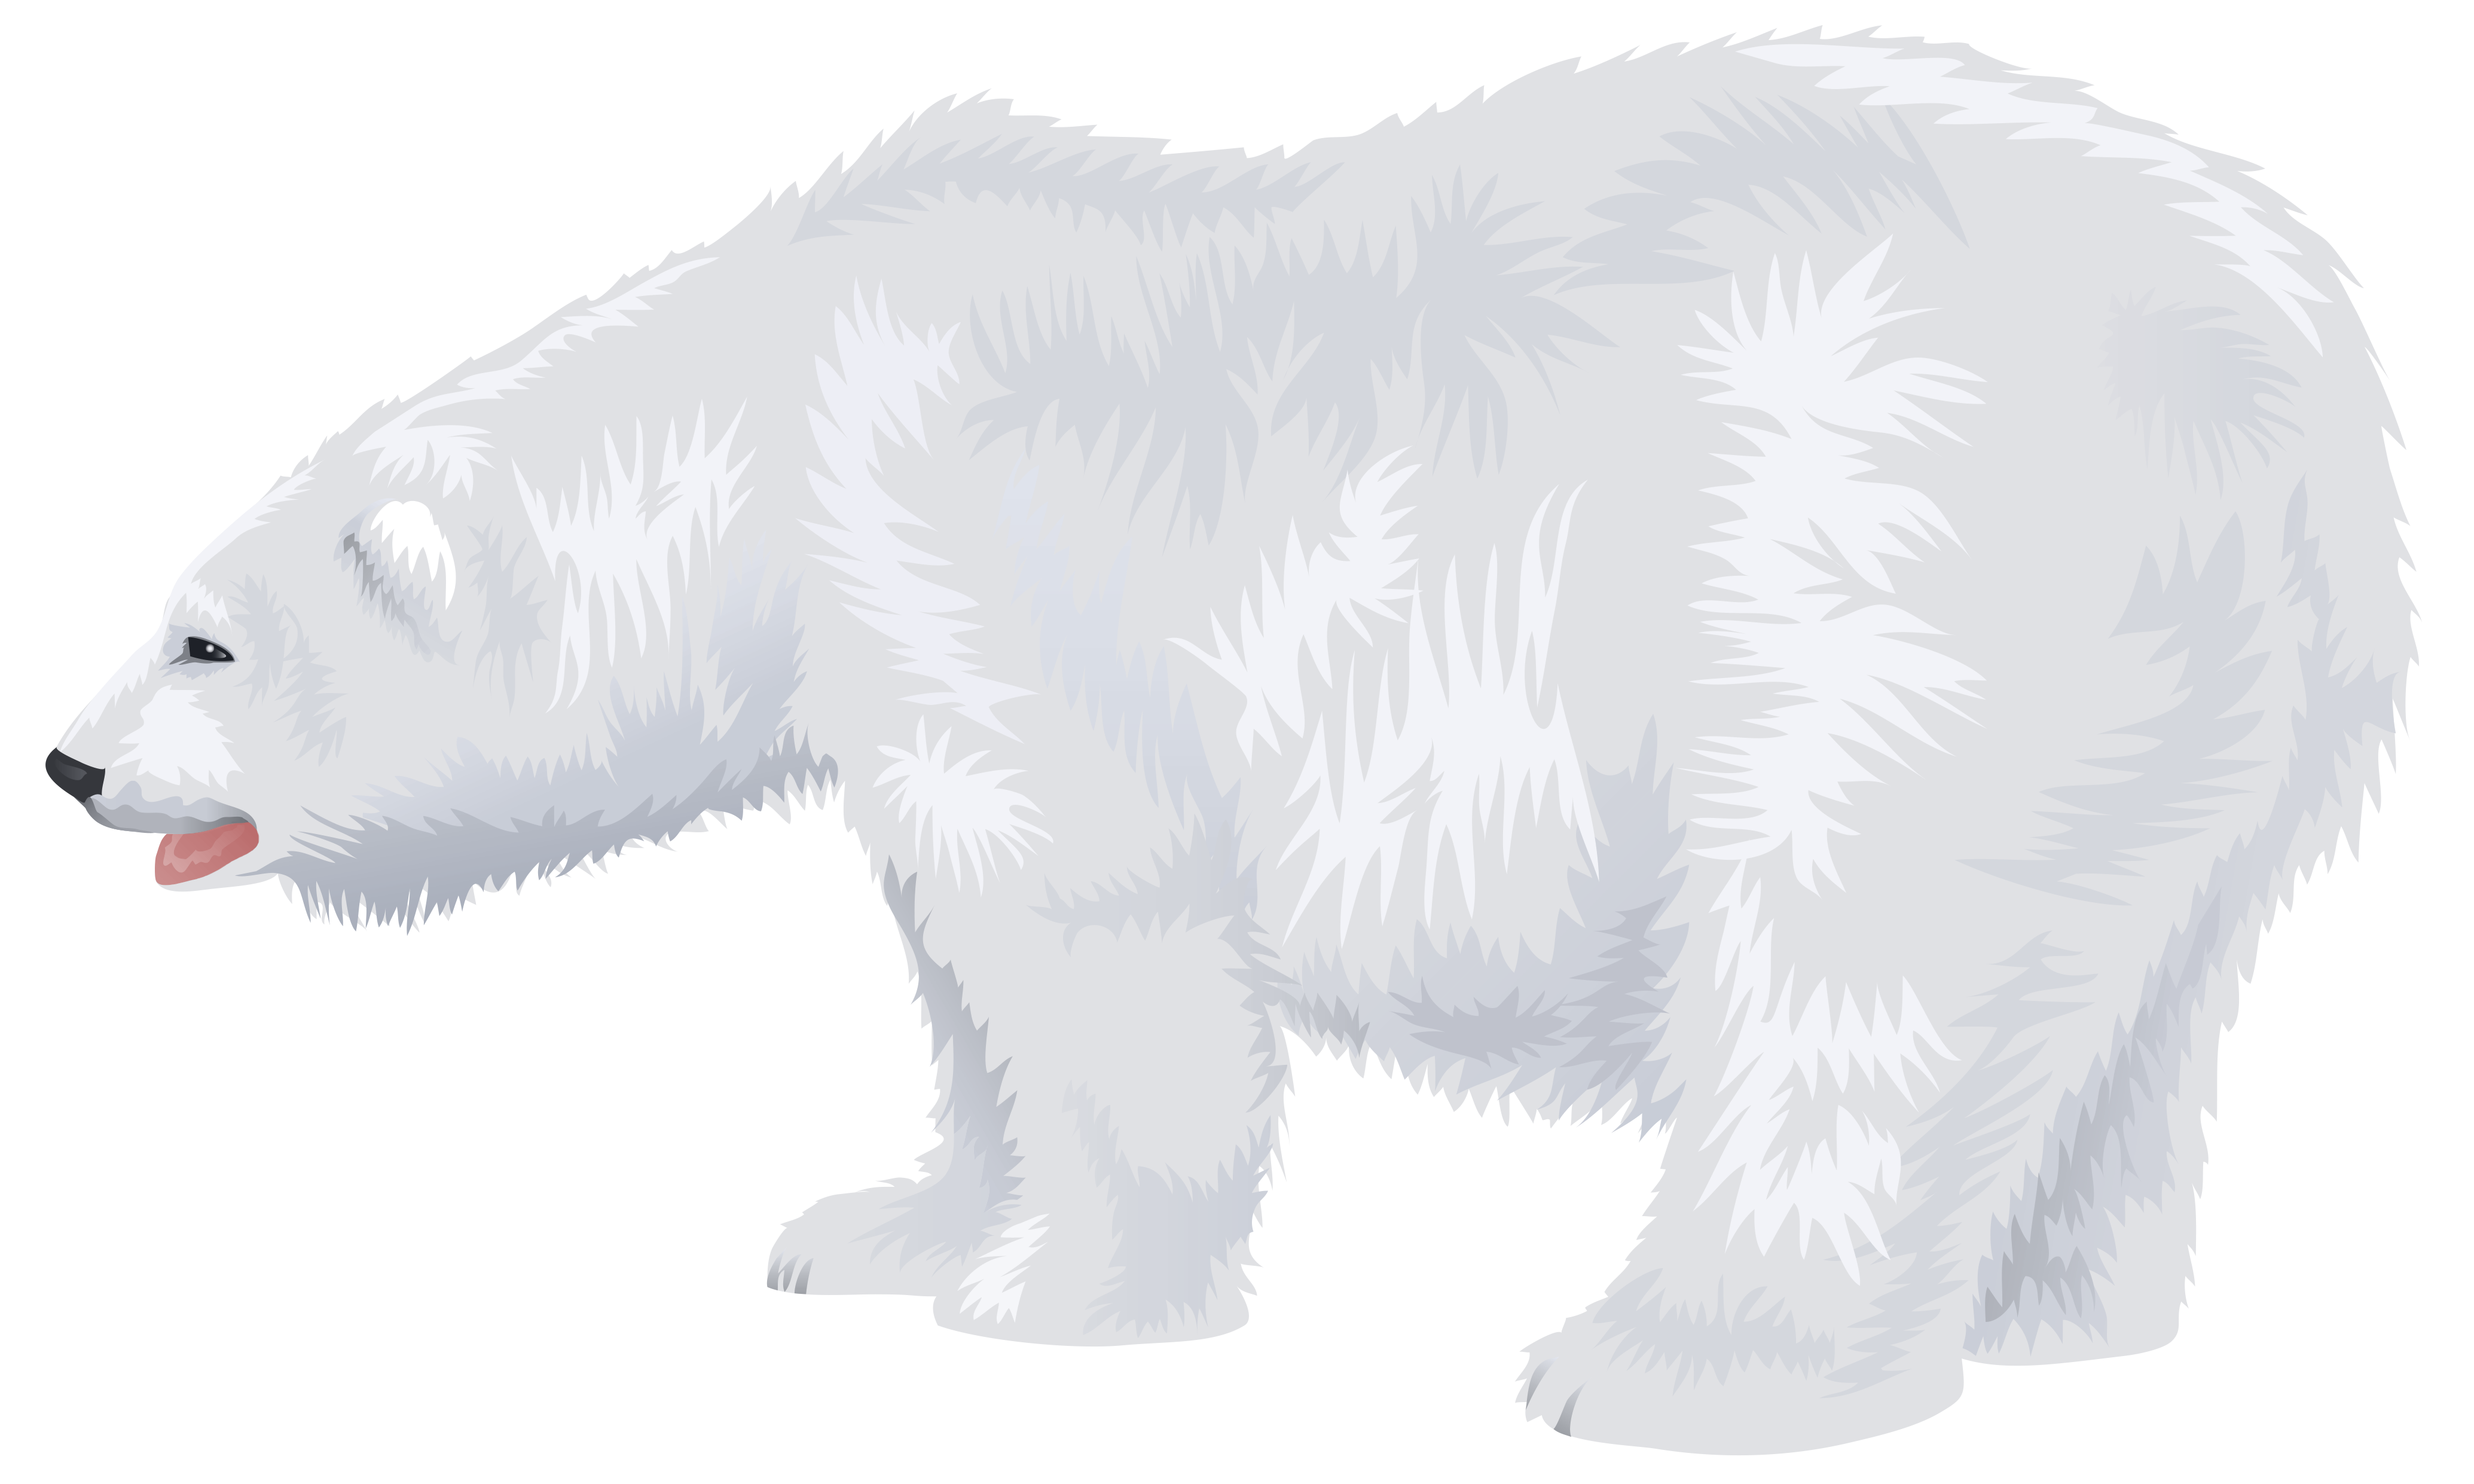 Polar transparent png image. Bear clip art white background jpg library library